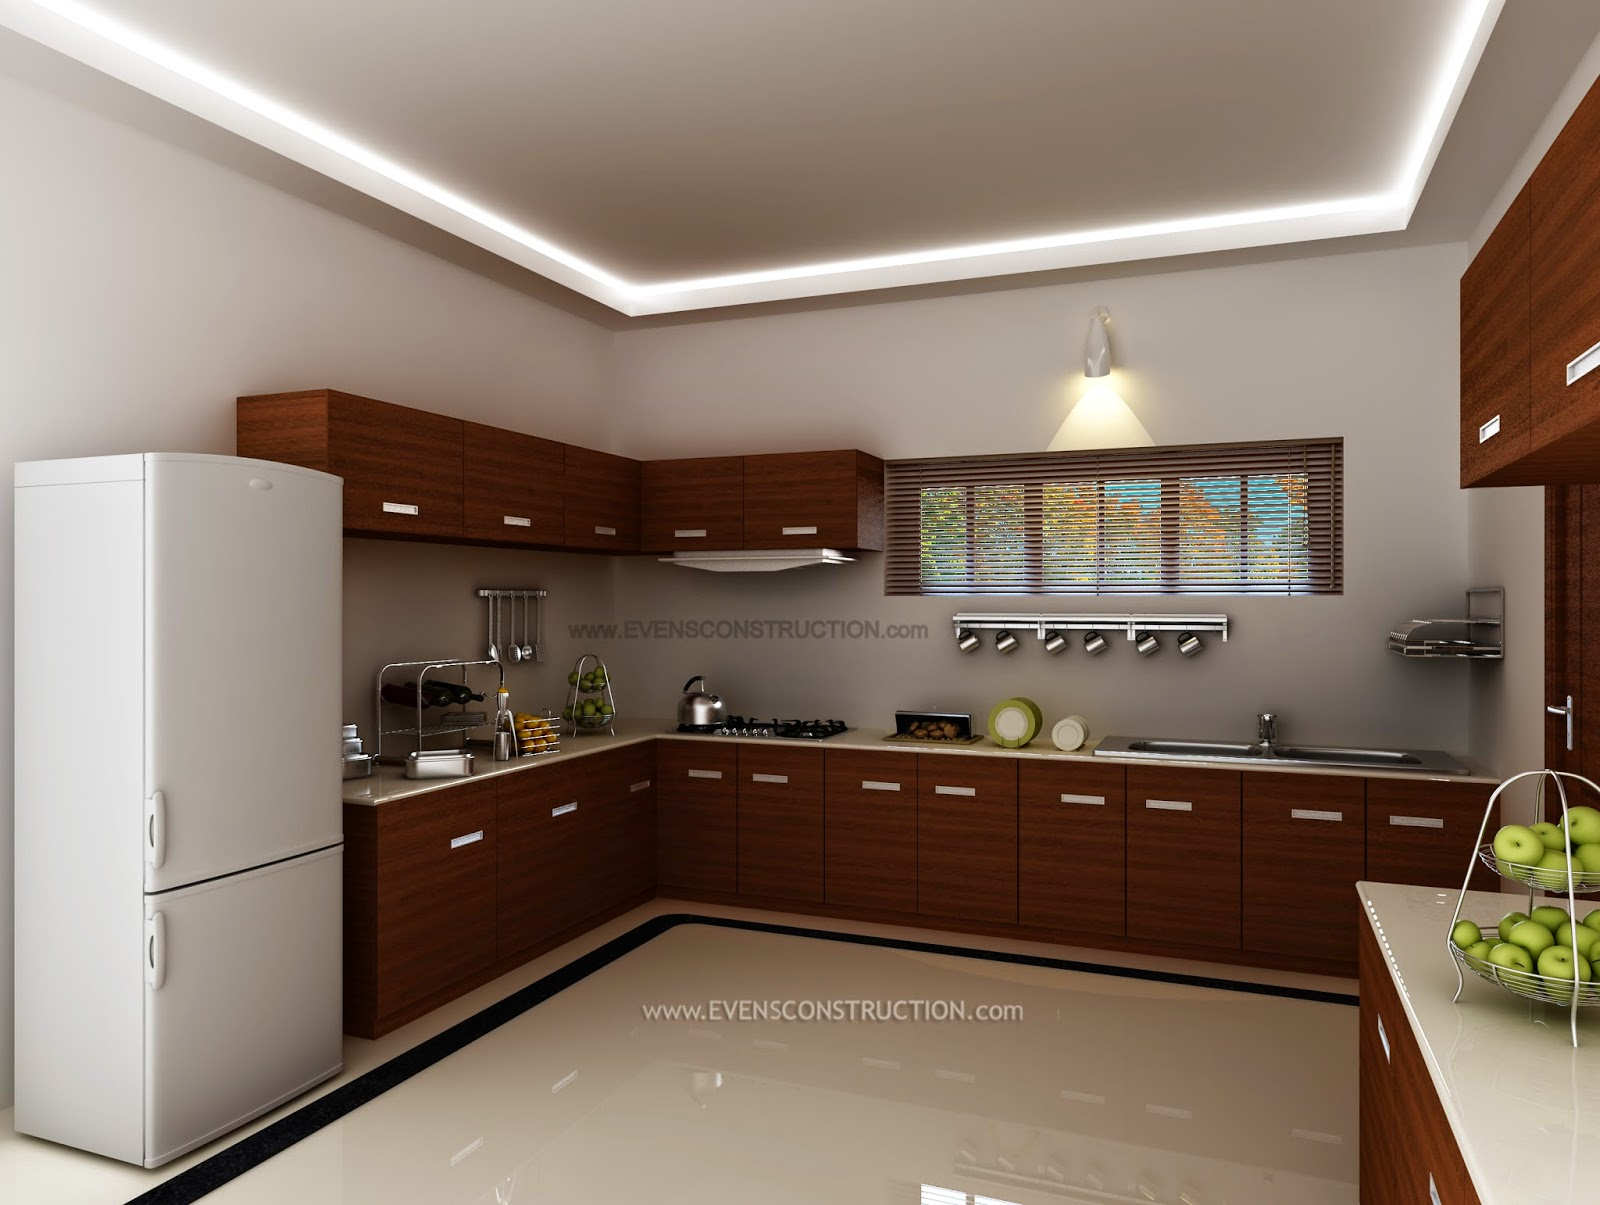 Evens construction pvt ltd kerala kitchen interior for Kitchen design kerala